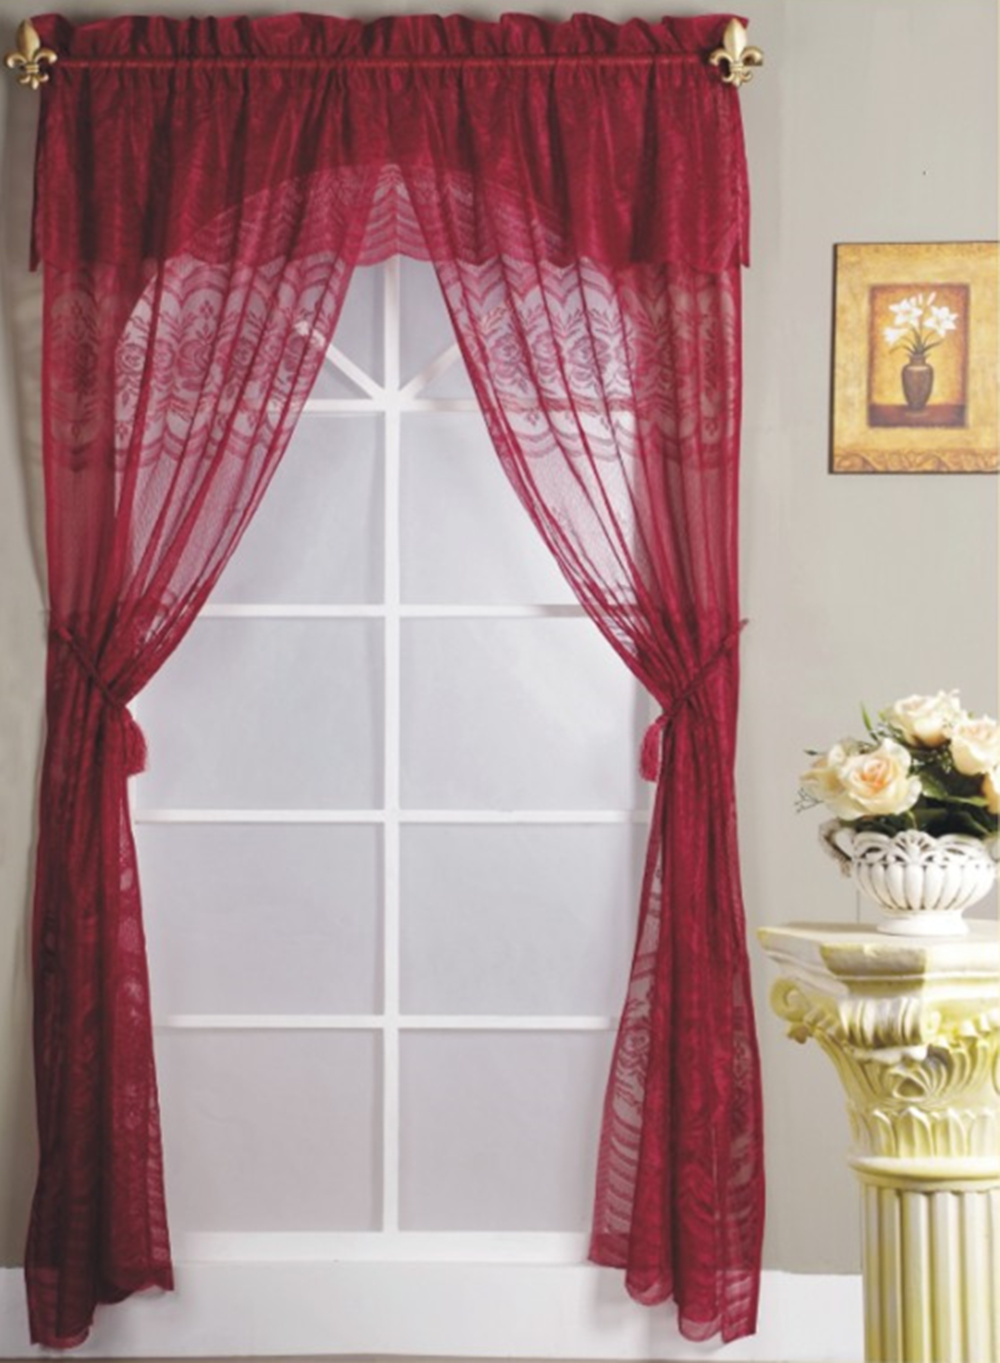 Polyester Lace Curtain With Valance And Rod Pocket